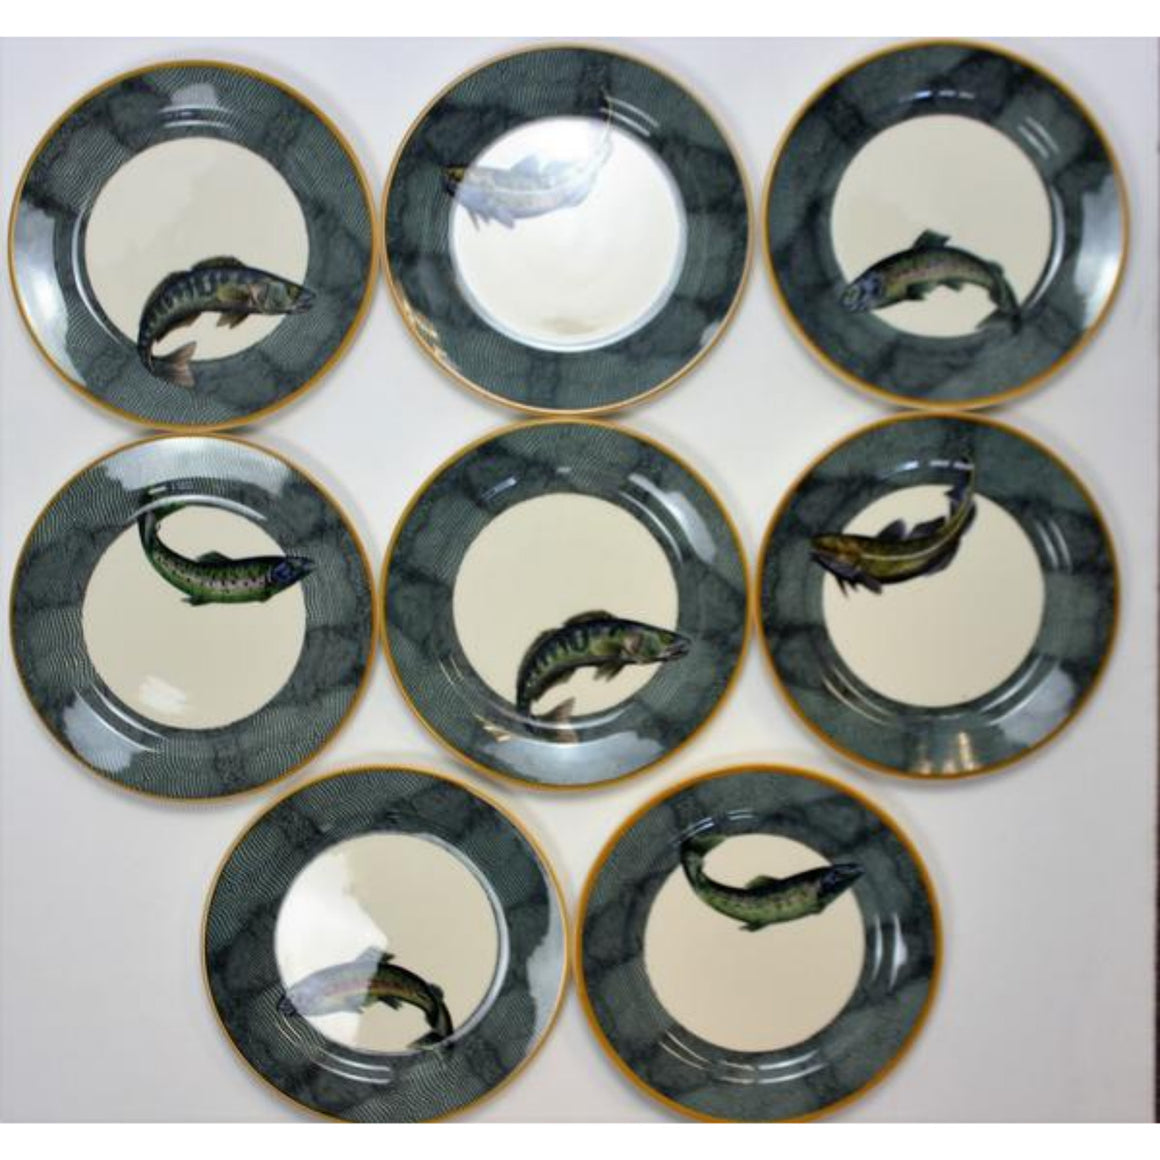 "'Set of 7 Williams Sonoma English Angler ""Trout"" Plates'"